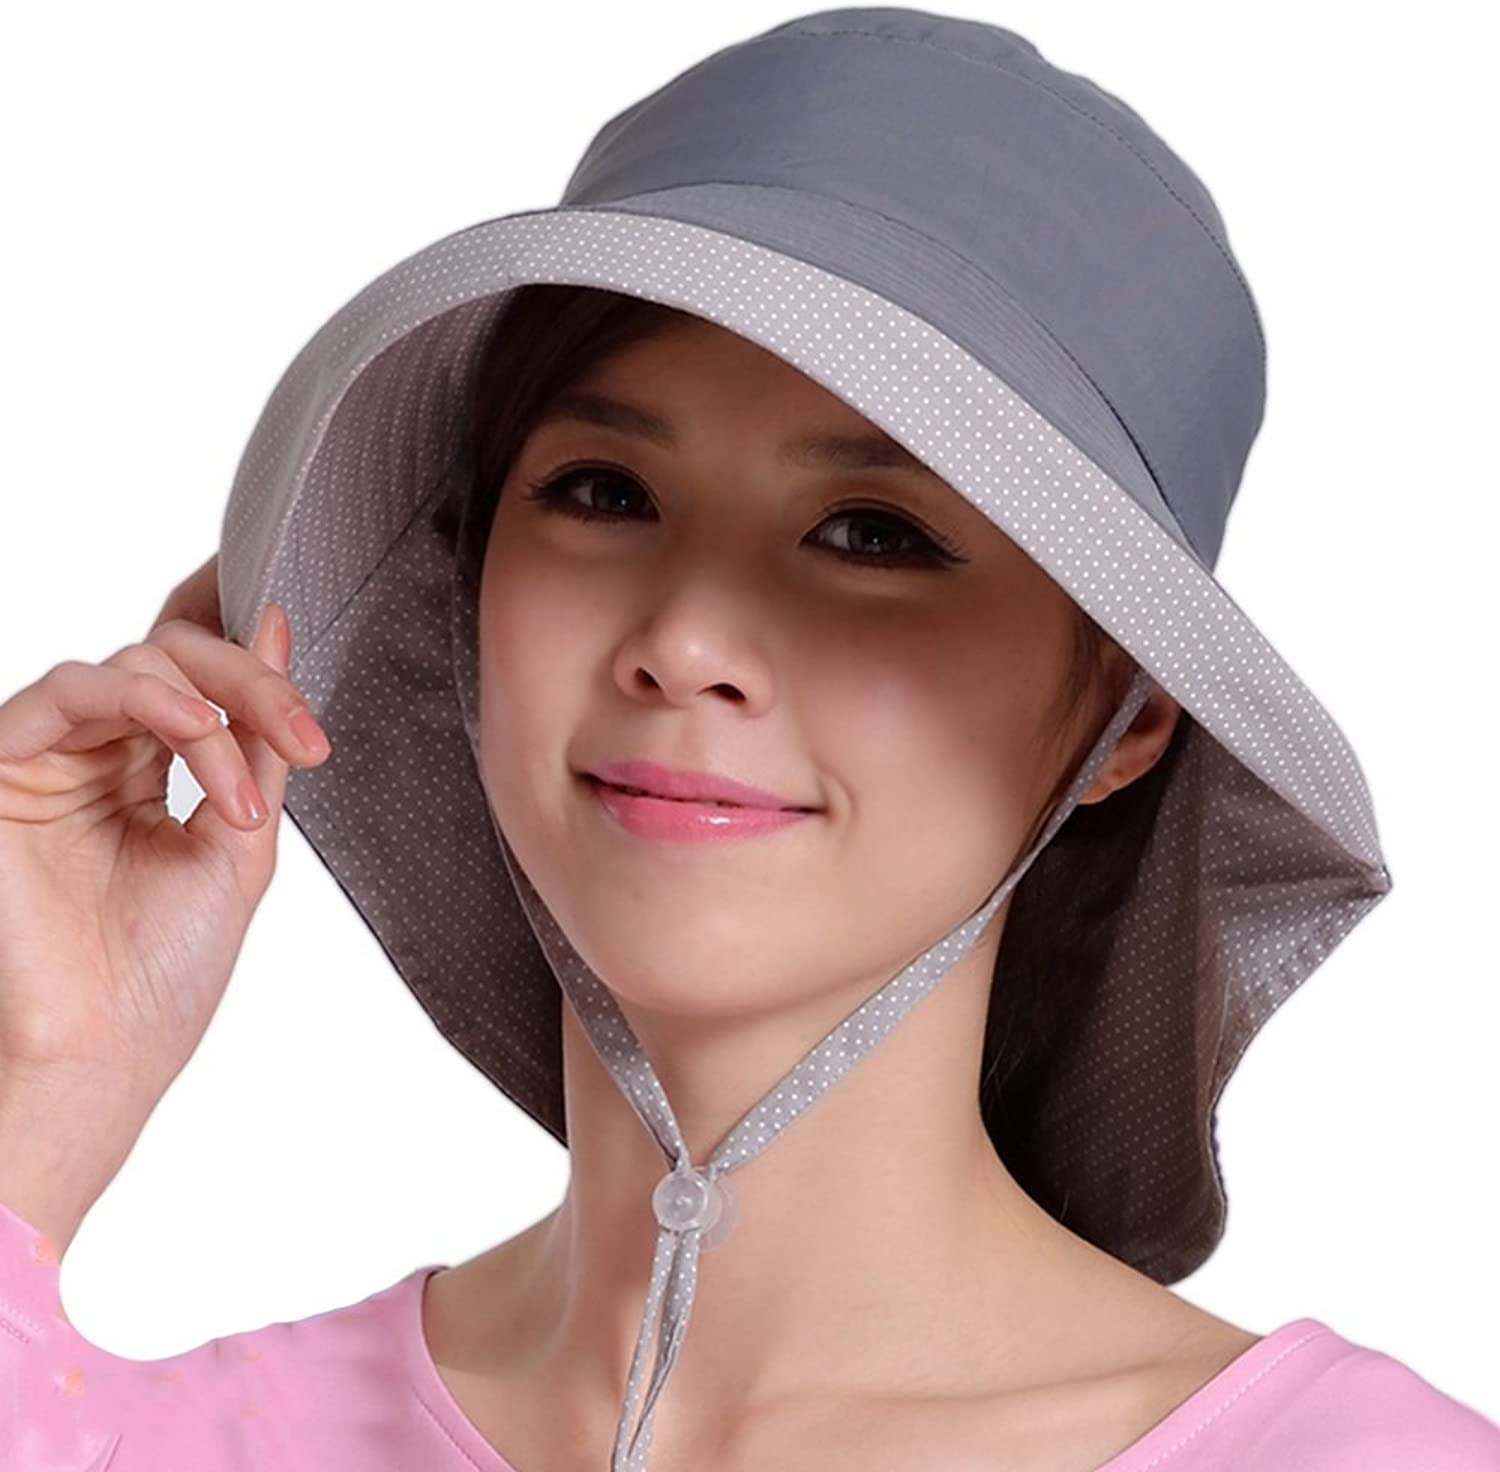 ZXQZ Hat AntiUV Breathable Visor Hat Lady's Summer Sun Predection Cap Outdoor Trip and Windproof Cap UV Predection Cap (color   G)